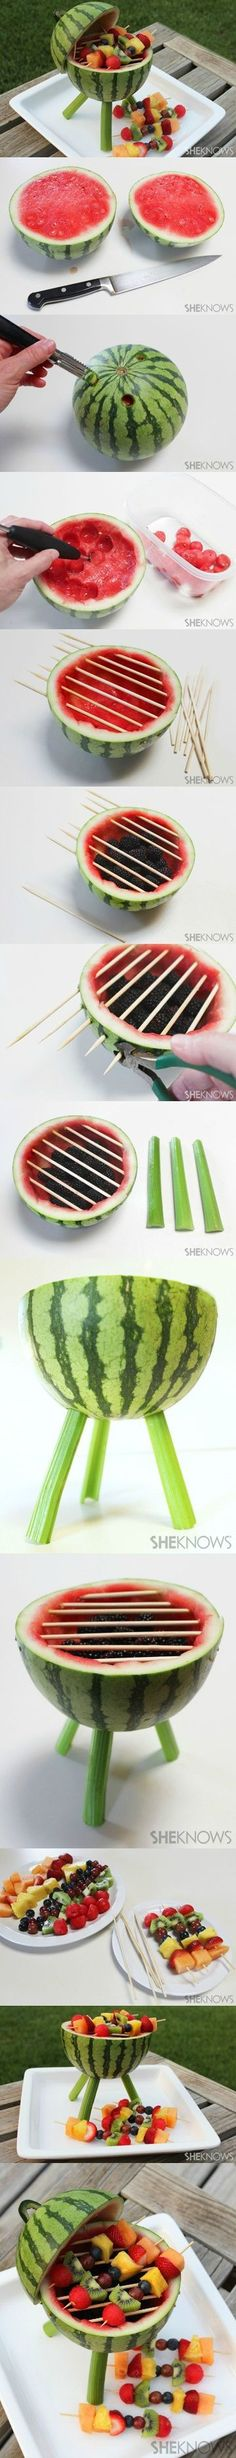 Diy Projects: DIY Watermelon Grill With Fruit Kabobs